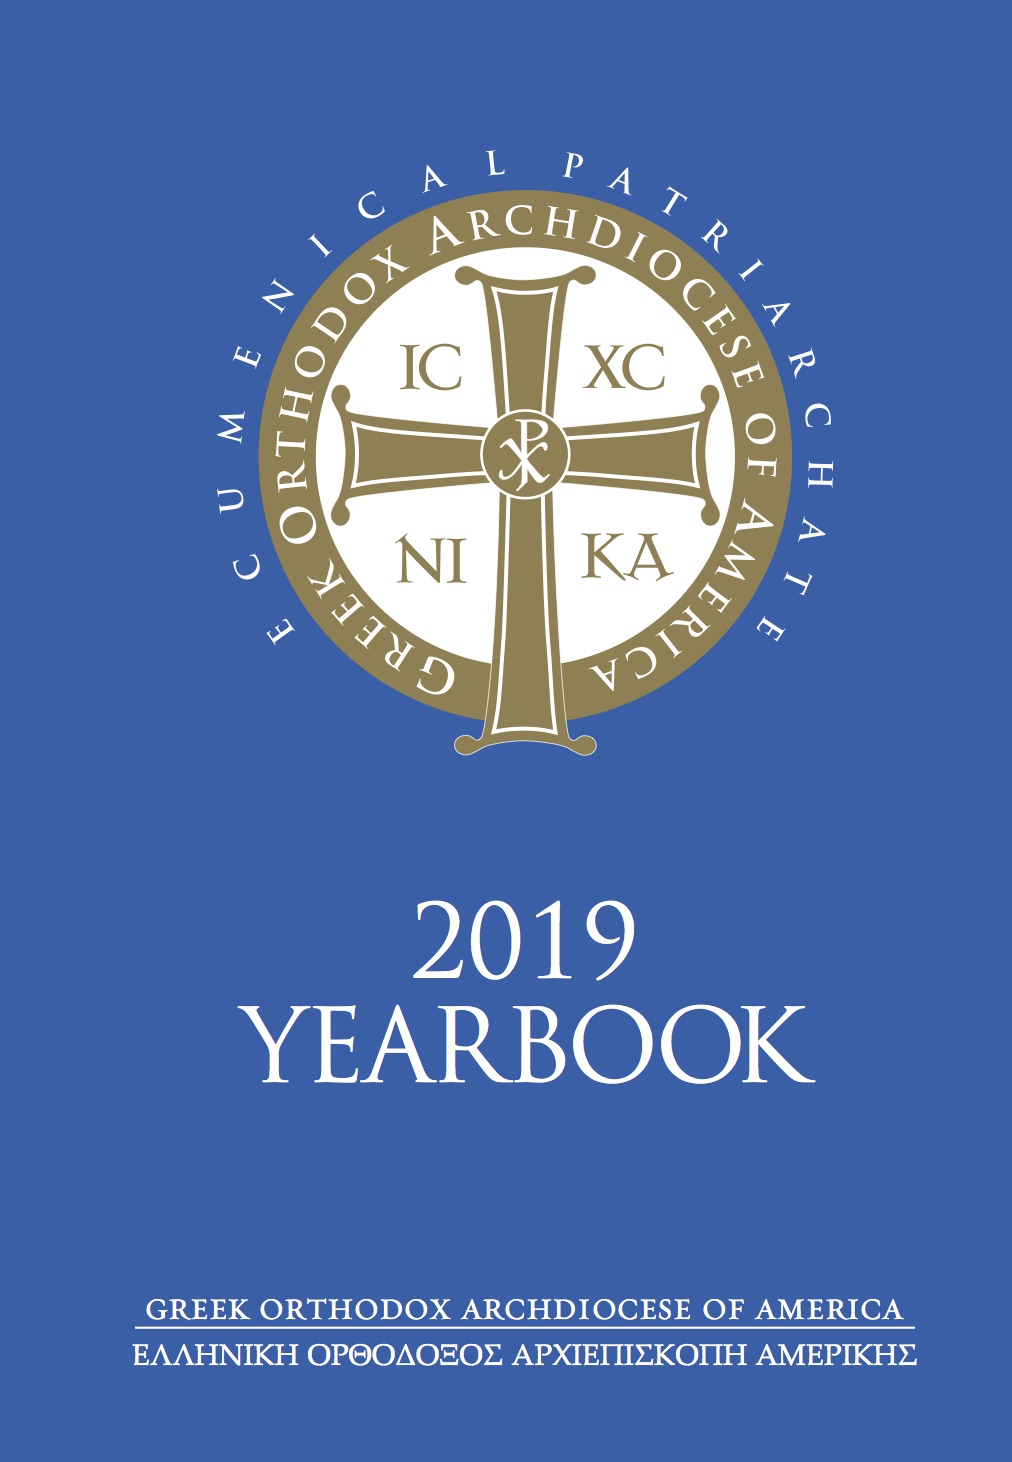 Greek Orthodox Archdiocese of America 2019 Yearbook Now Available Online